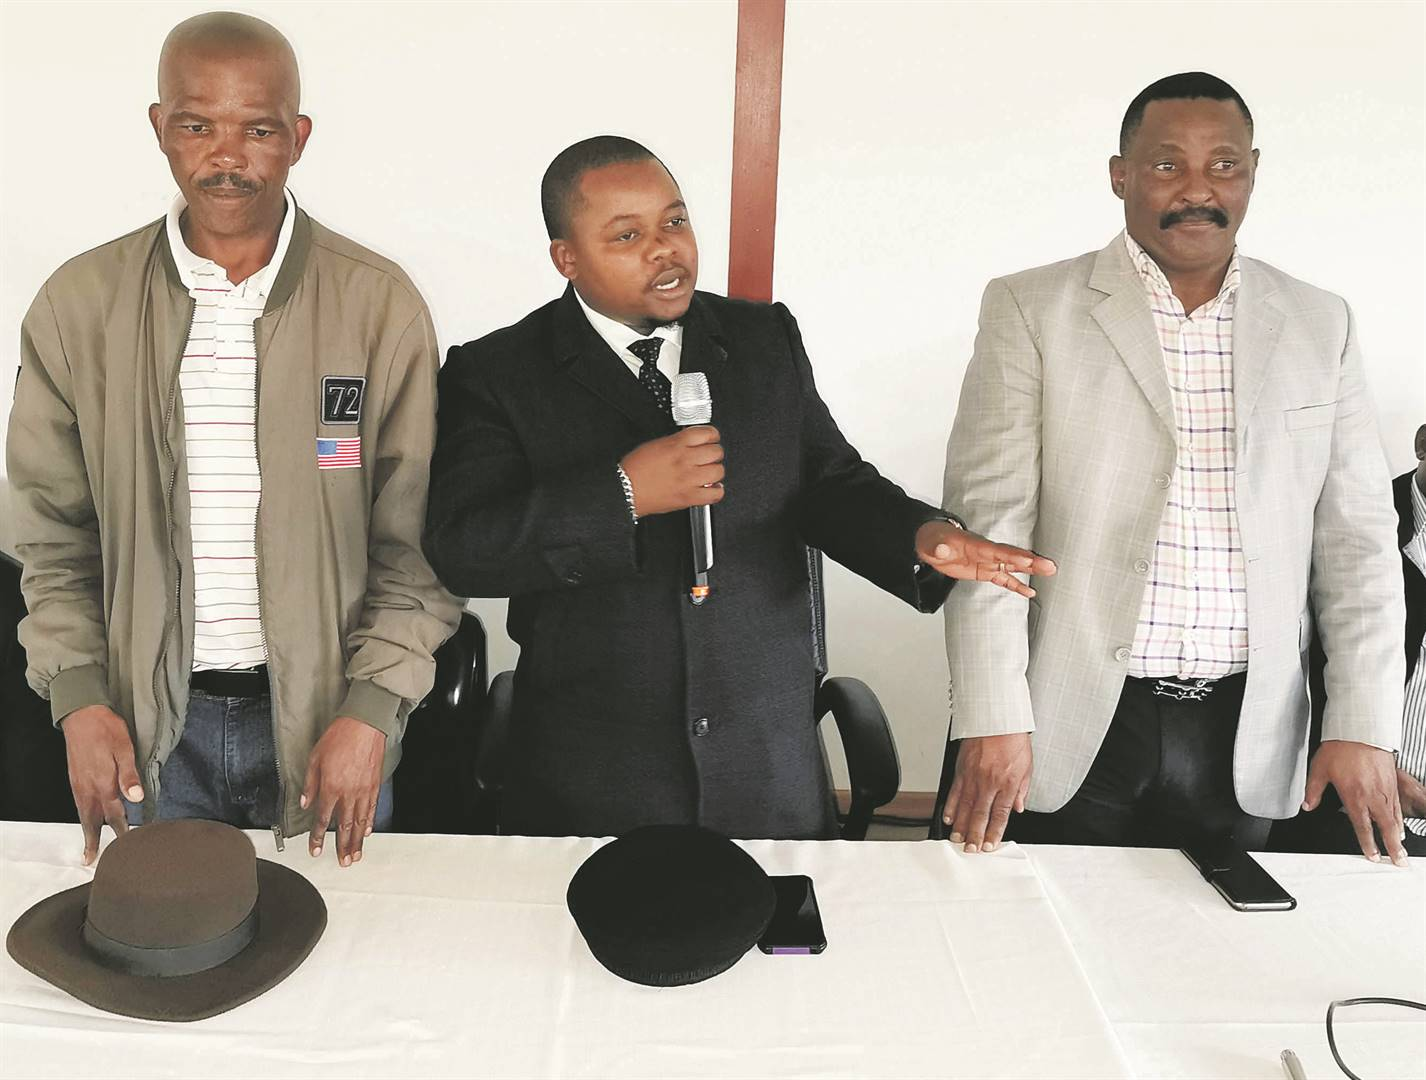 AbaThembu acting King Azenathi Dalindyebo flanked by senior traditional Nkosi Dumisani Mgudlwa (left) and his uncle Prince Mankunku Dalindyebo (right) at Bummbane Great Place following a meeting of abaThembu Picture: Lubabalo Ngcukana